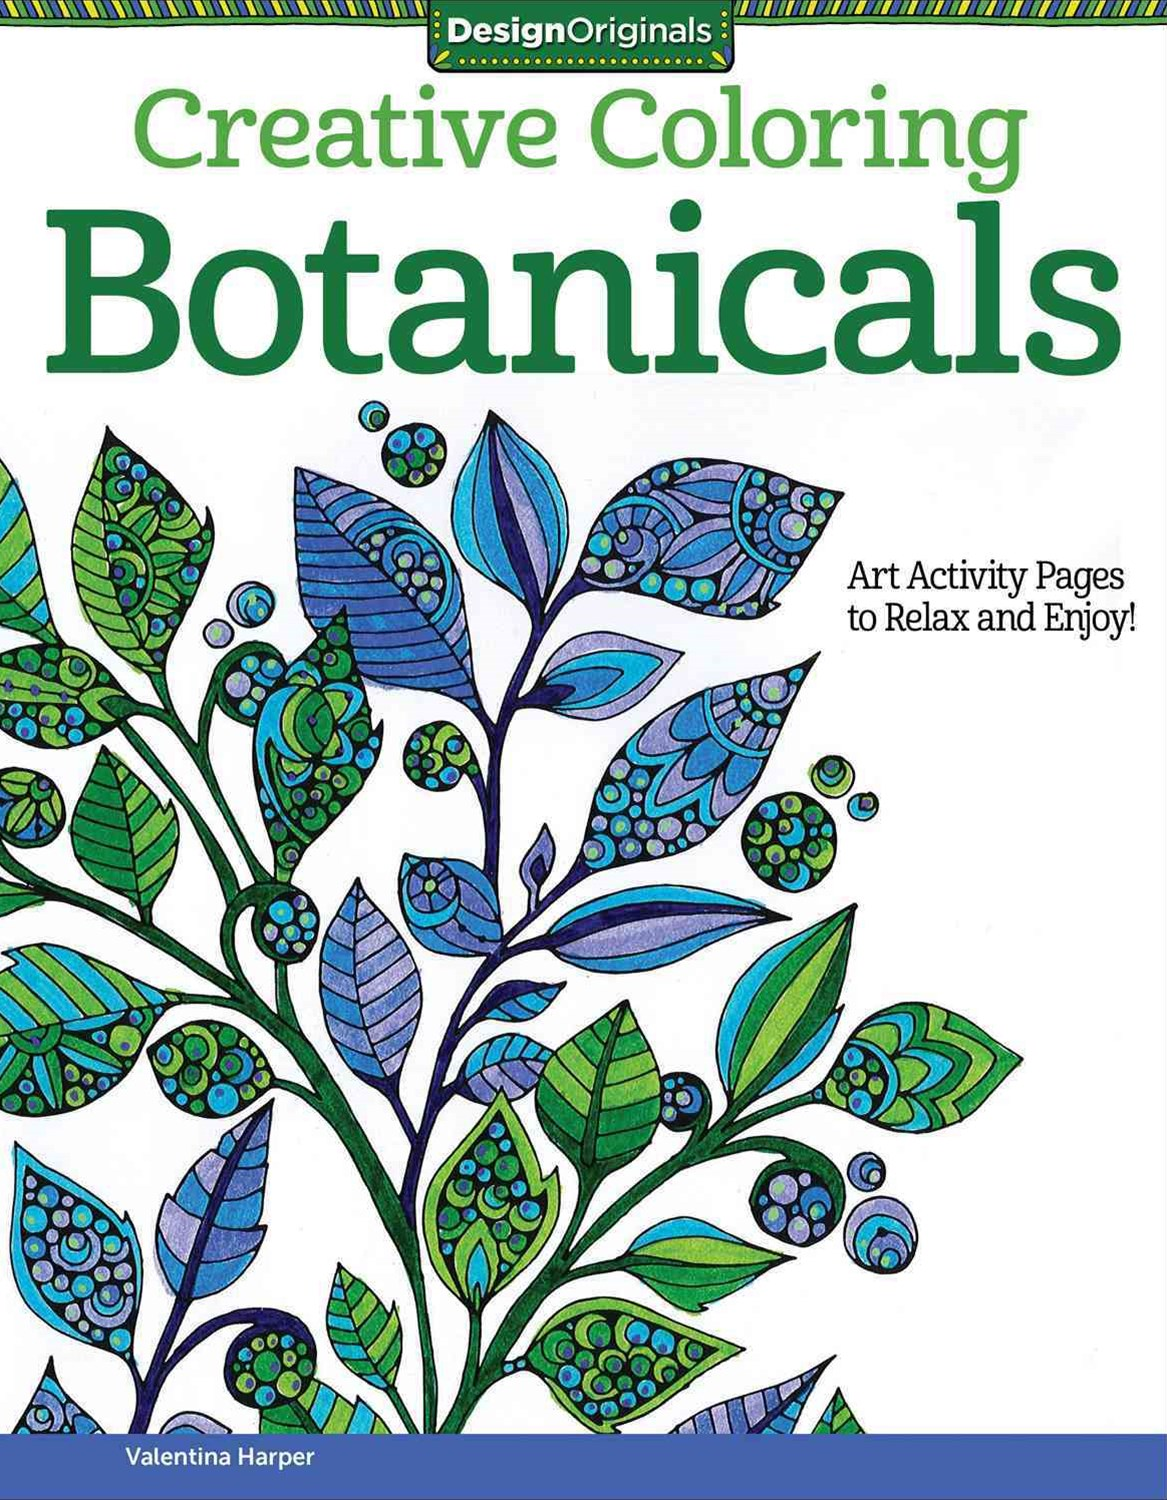 Creative Coloring Botanicals